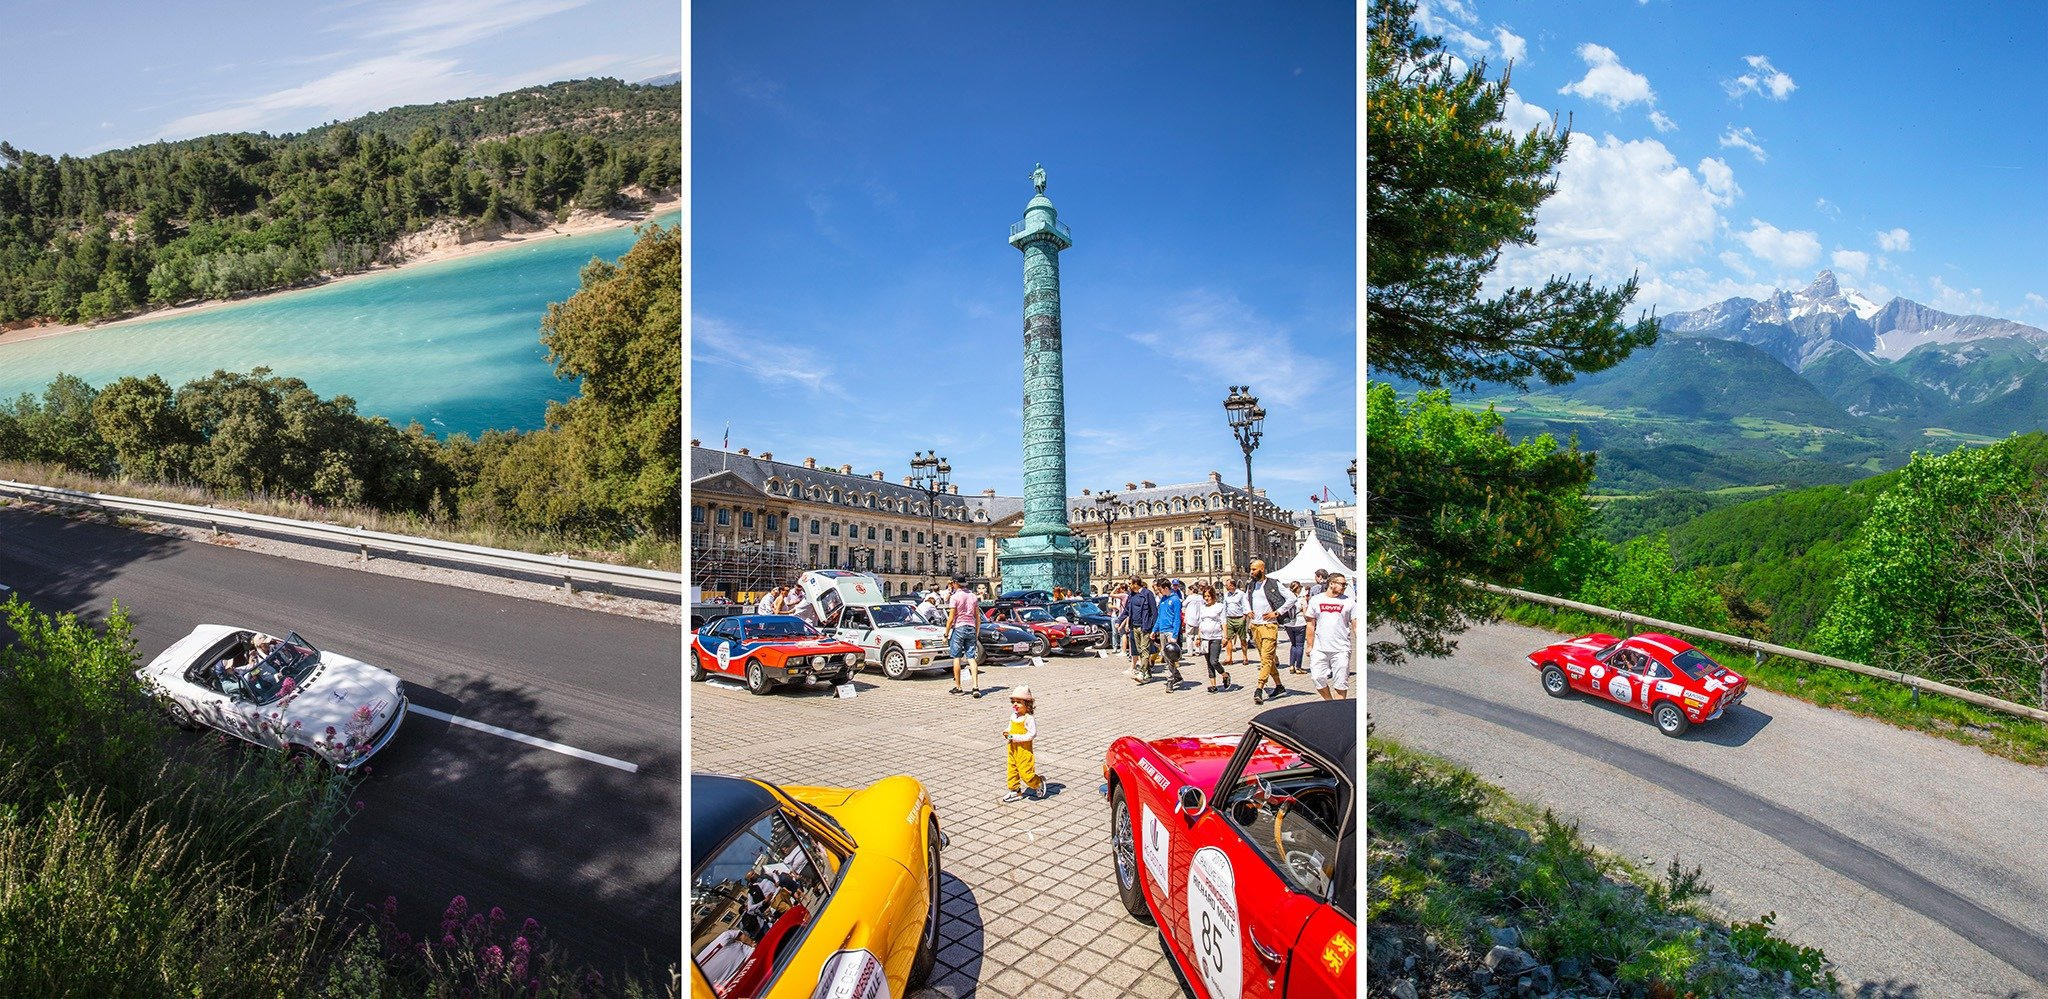 The route took the competitors on a five-day adventure through 1,700 kilometers of French countryside from Place Vendome in Paris to Saint Tropez via overnight halts in Saint Aignan, Vichy, Aix-les-Bains and Saint Tropez.